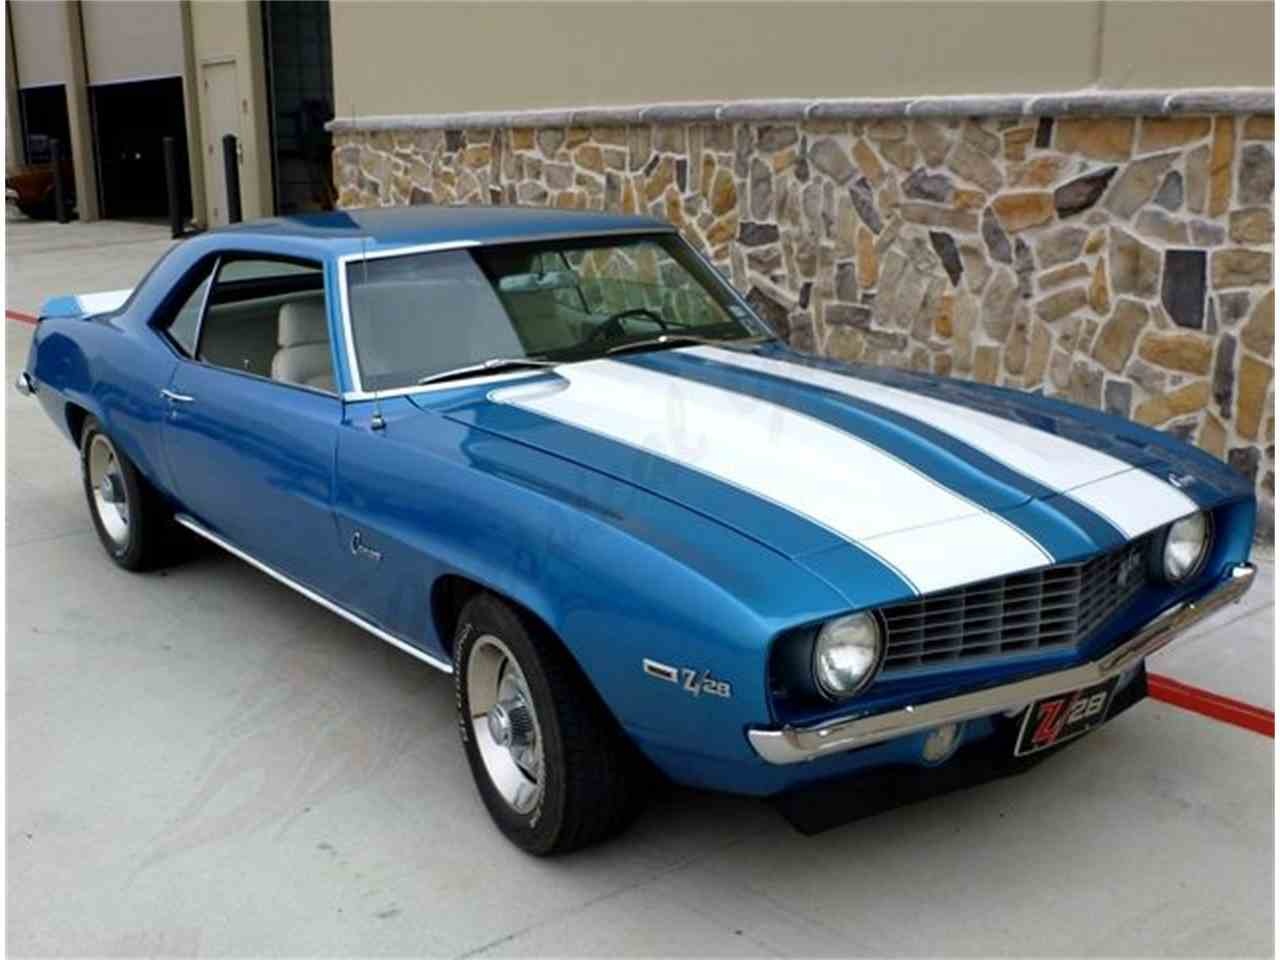 1969 chevrolet camaro z28 for sale cc - Camaro z28 ...